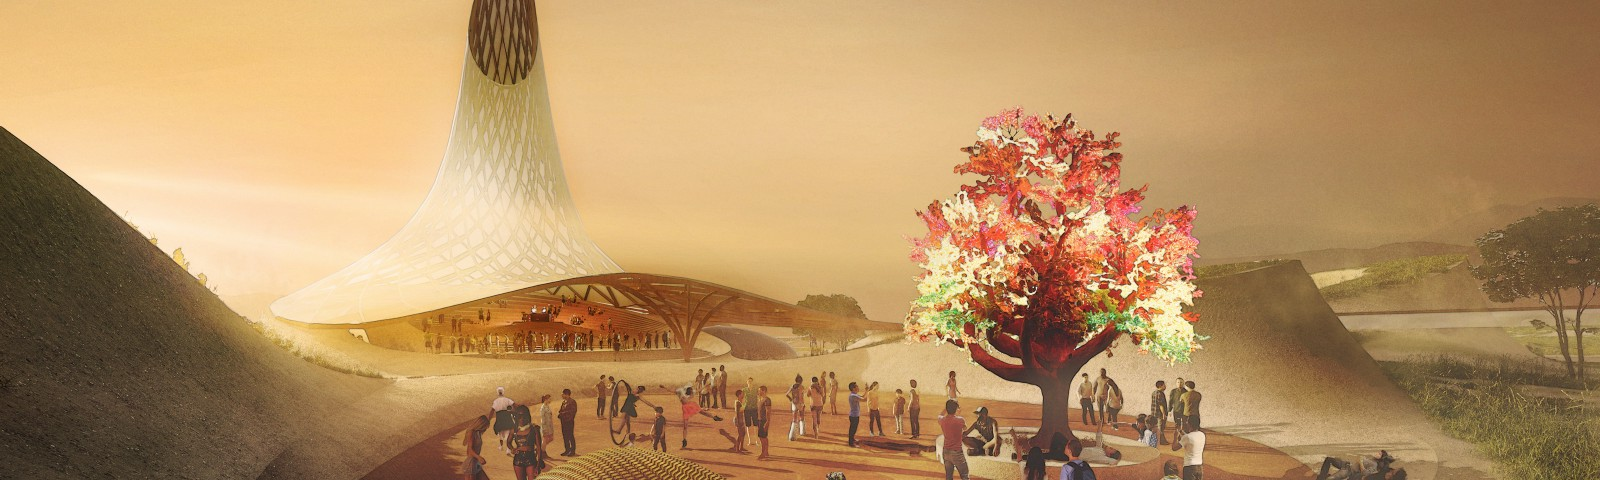 Project SEED, a regenerative city being built at Fly Ranch, winner of the LAGI x Burning Man competition.